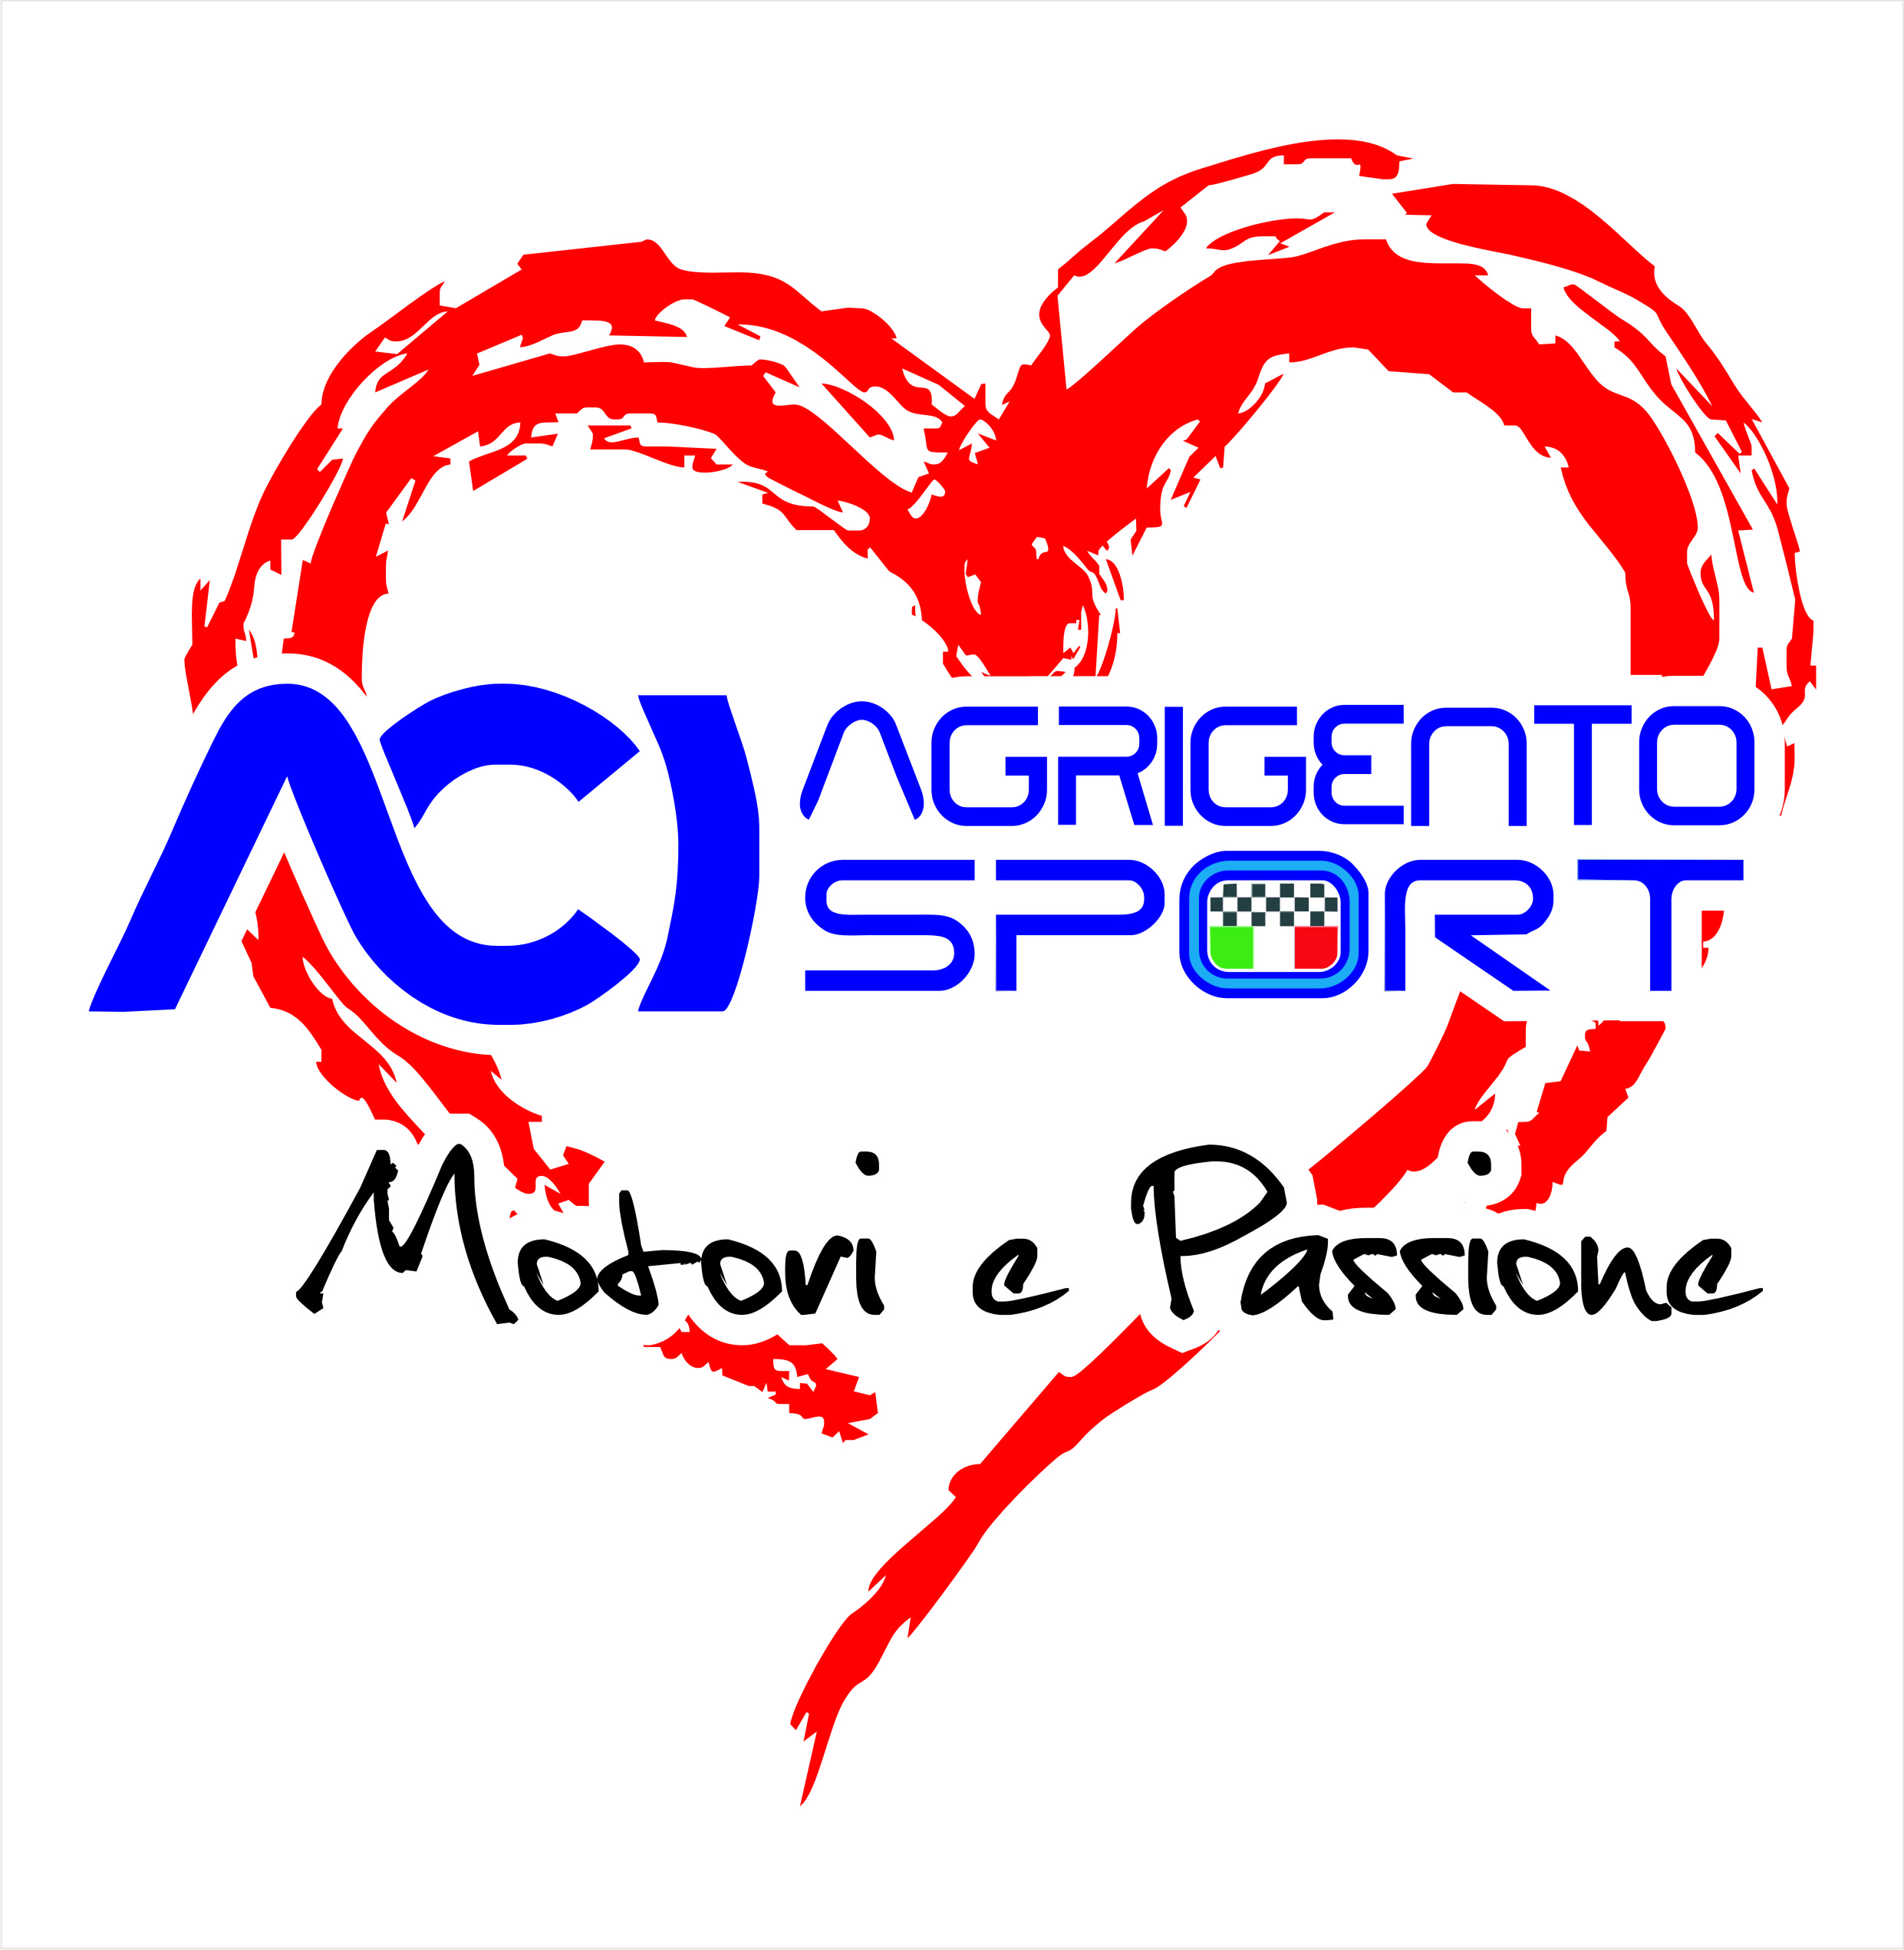 automobile club Agrigento